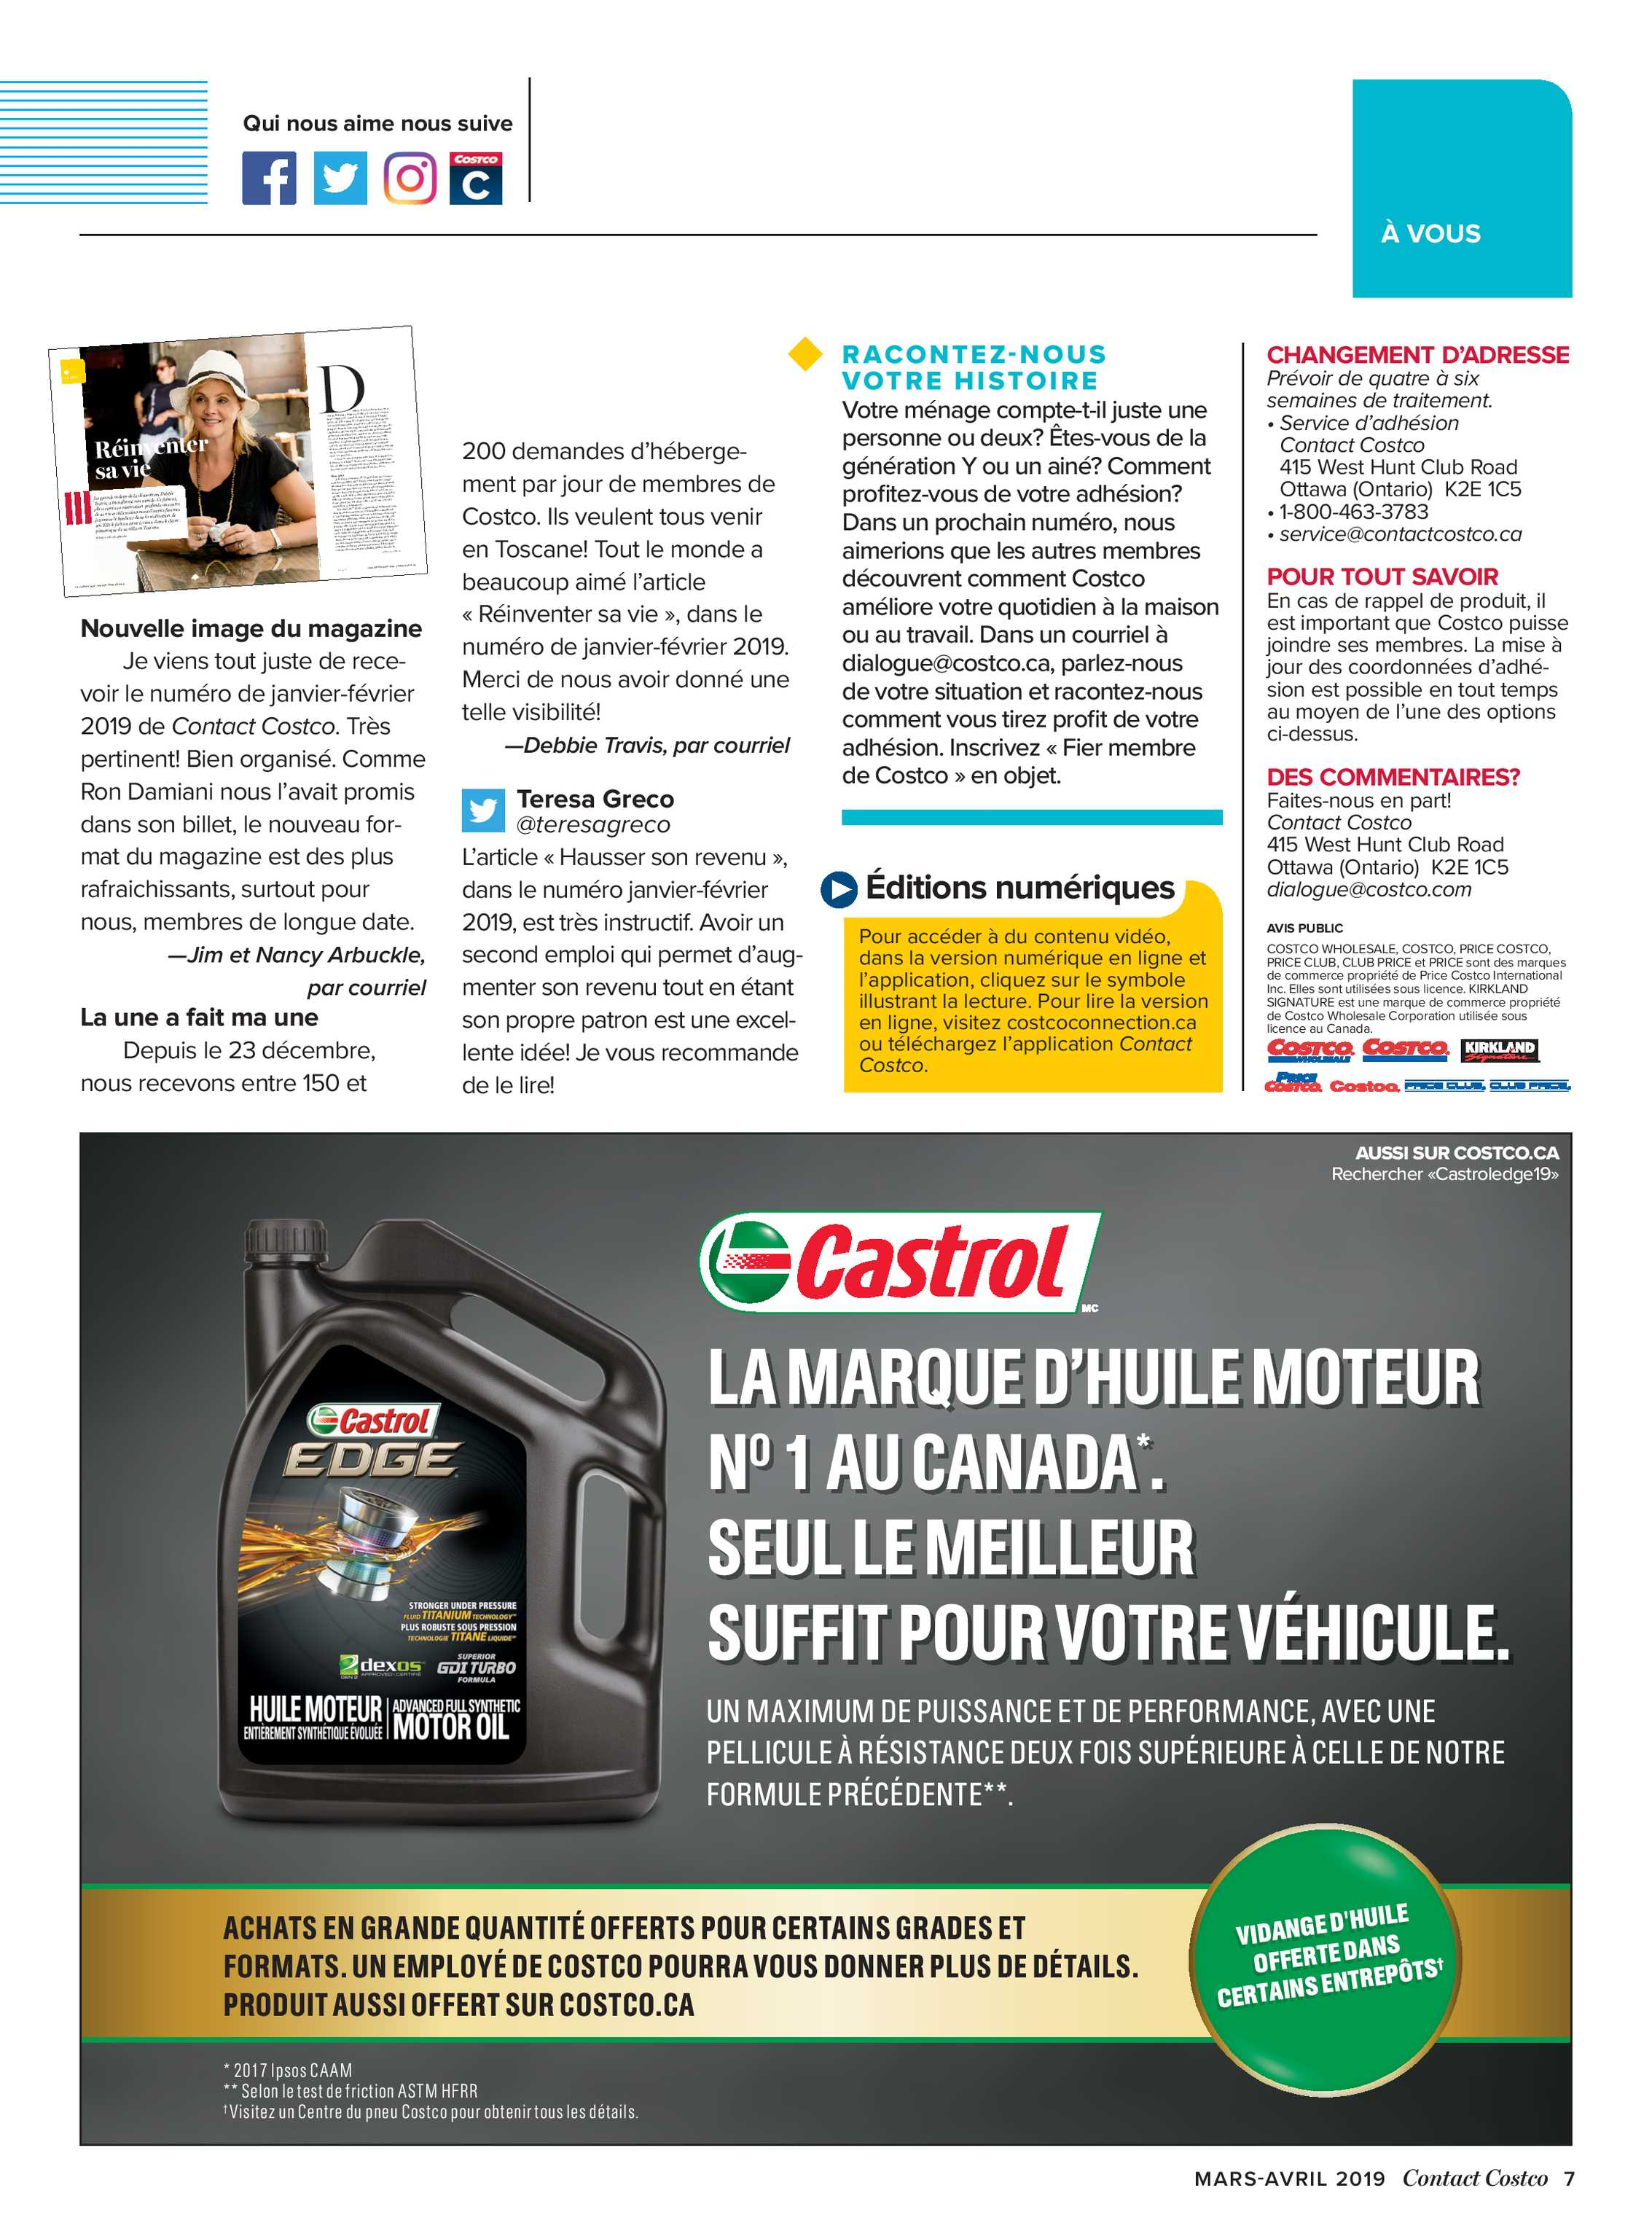 Meubles à Donner Ottawa Contact Costco March April 2019 Page 7